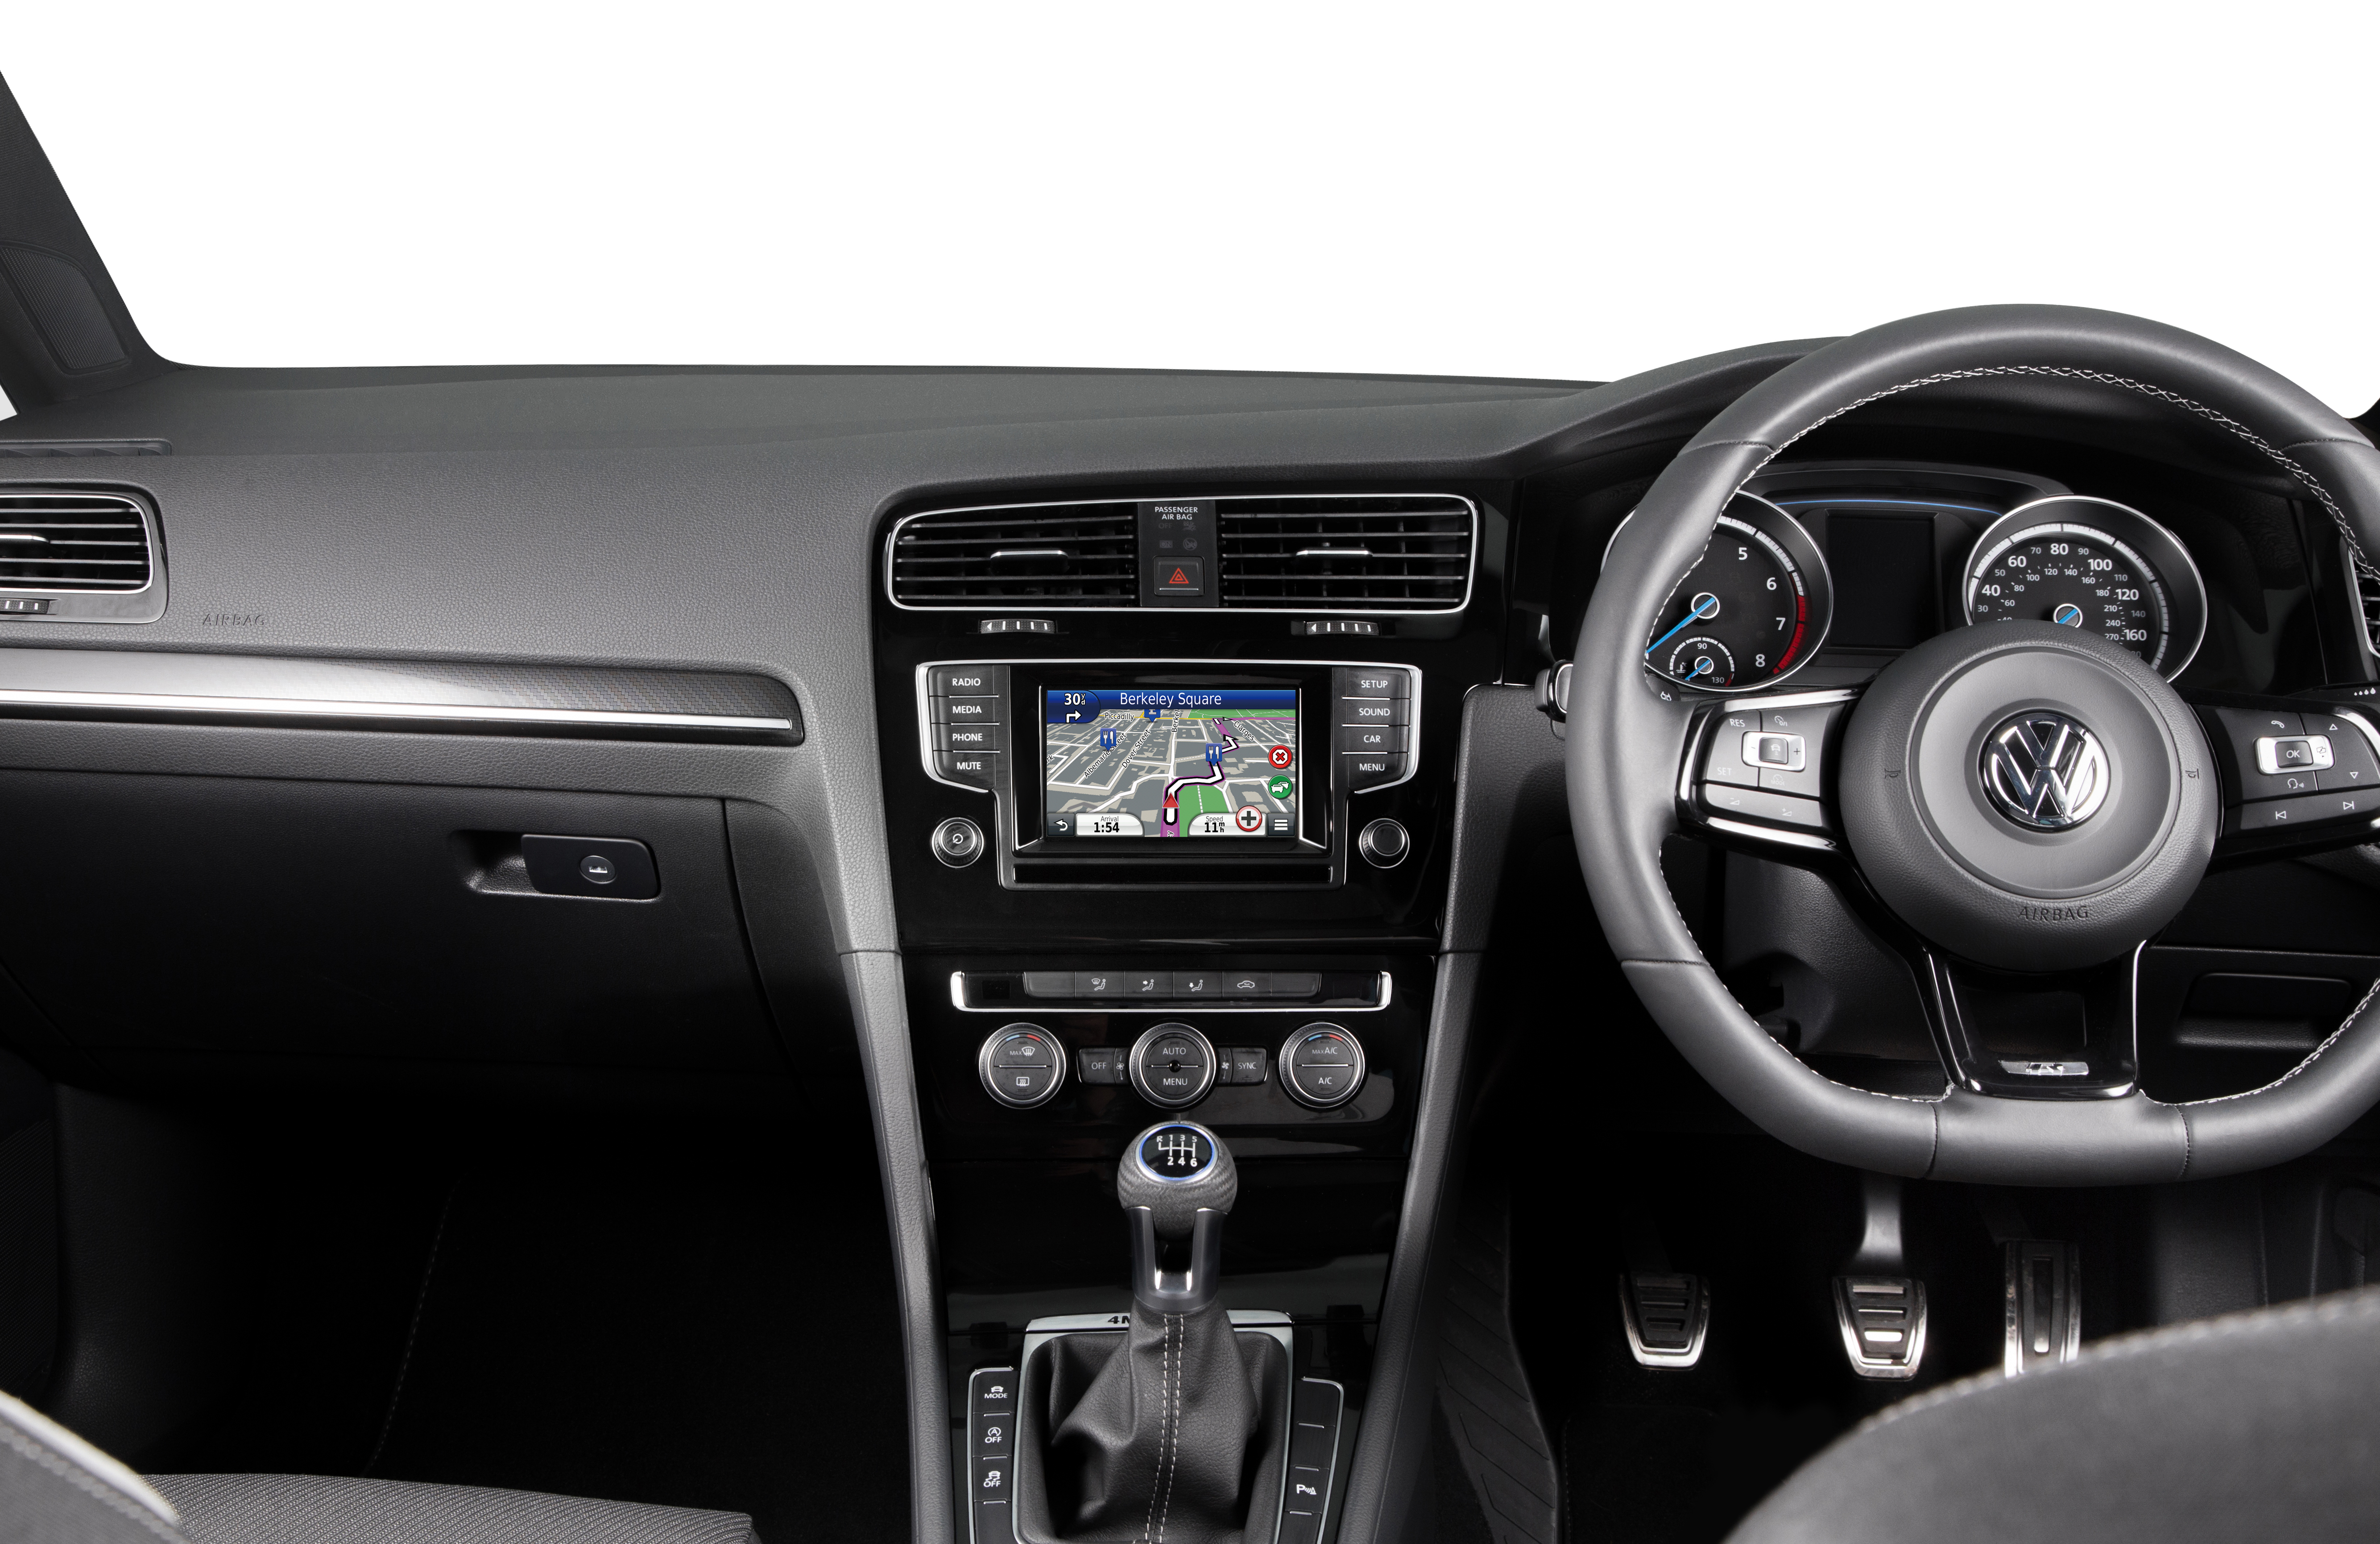 Upgrade your MK7 to Garmin nav with the Kenwood GVN-MIB1